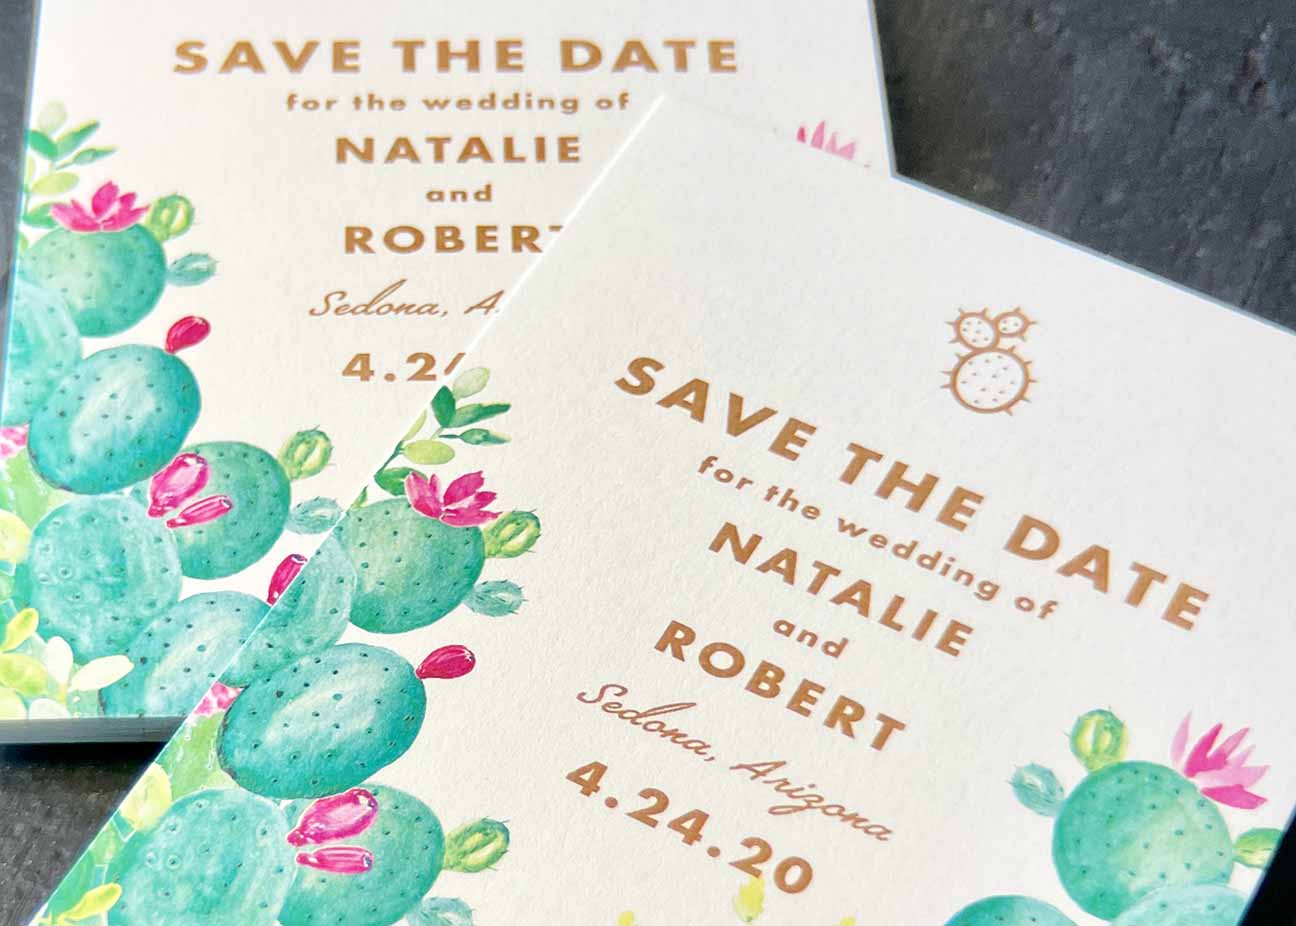 Full Color Digitally Printed Save The Date